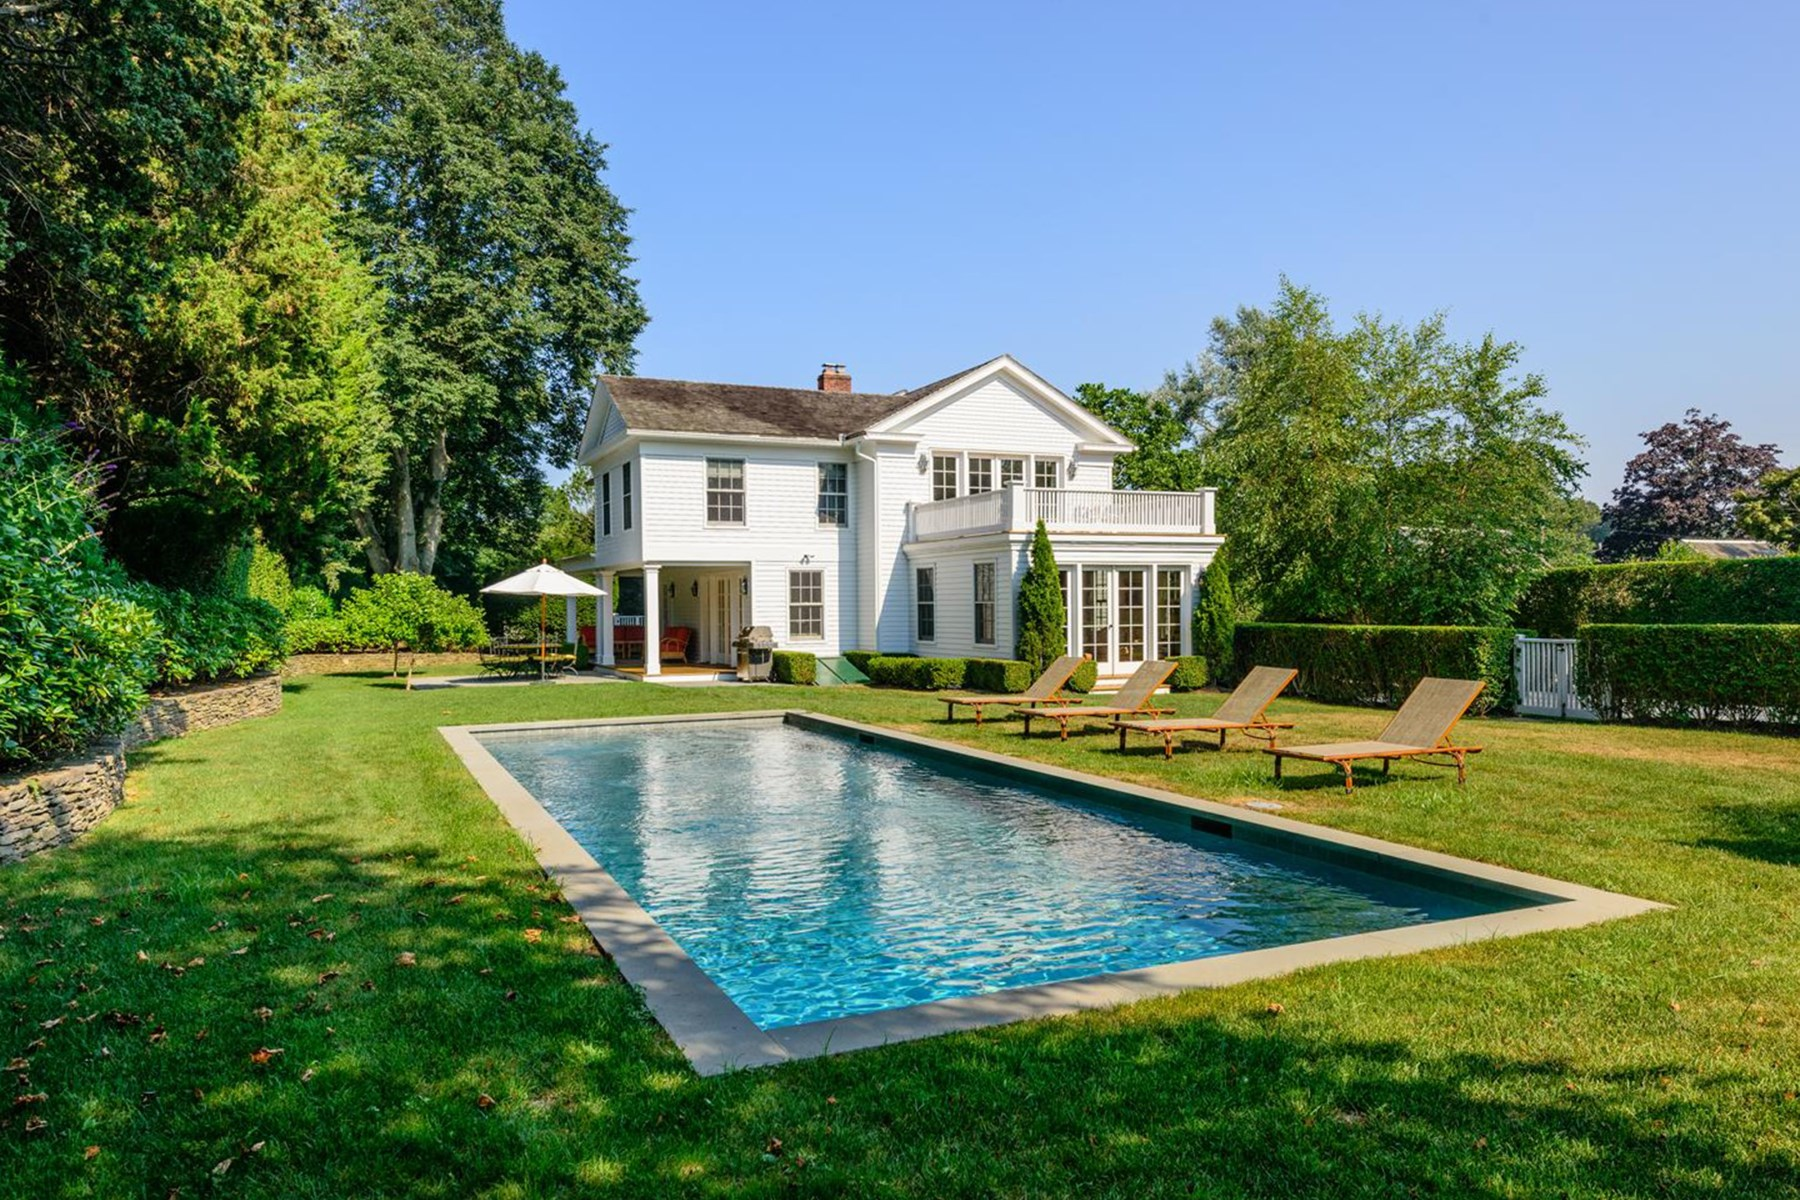 Maison unifamiliale pour l à louer à Magnificent Historic Greek Revival, Bridgehampton South, Bridgehampton, New York, 11932 États-Unis